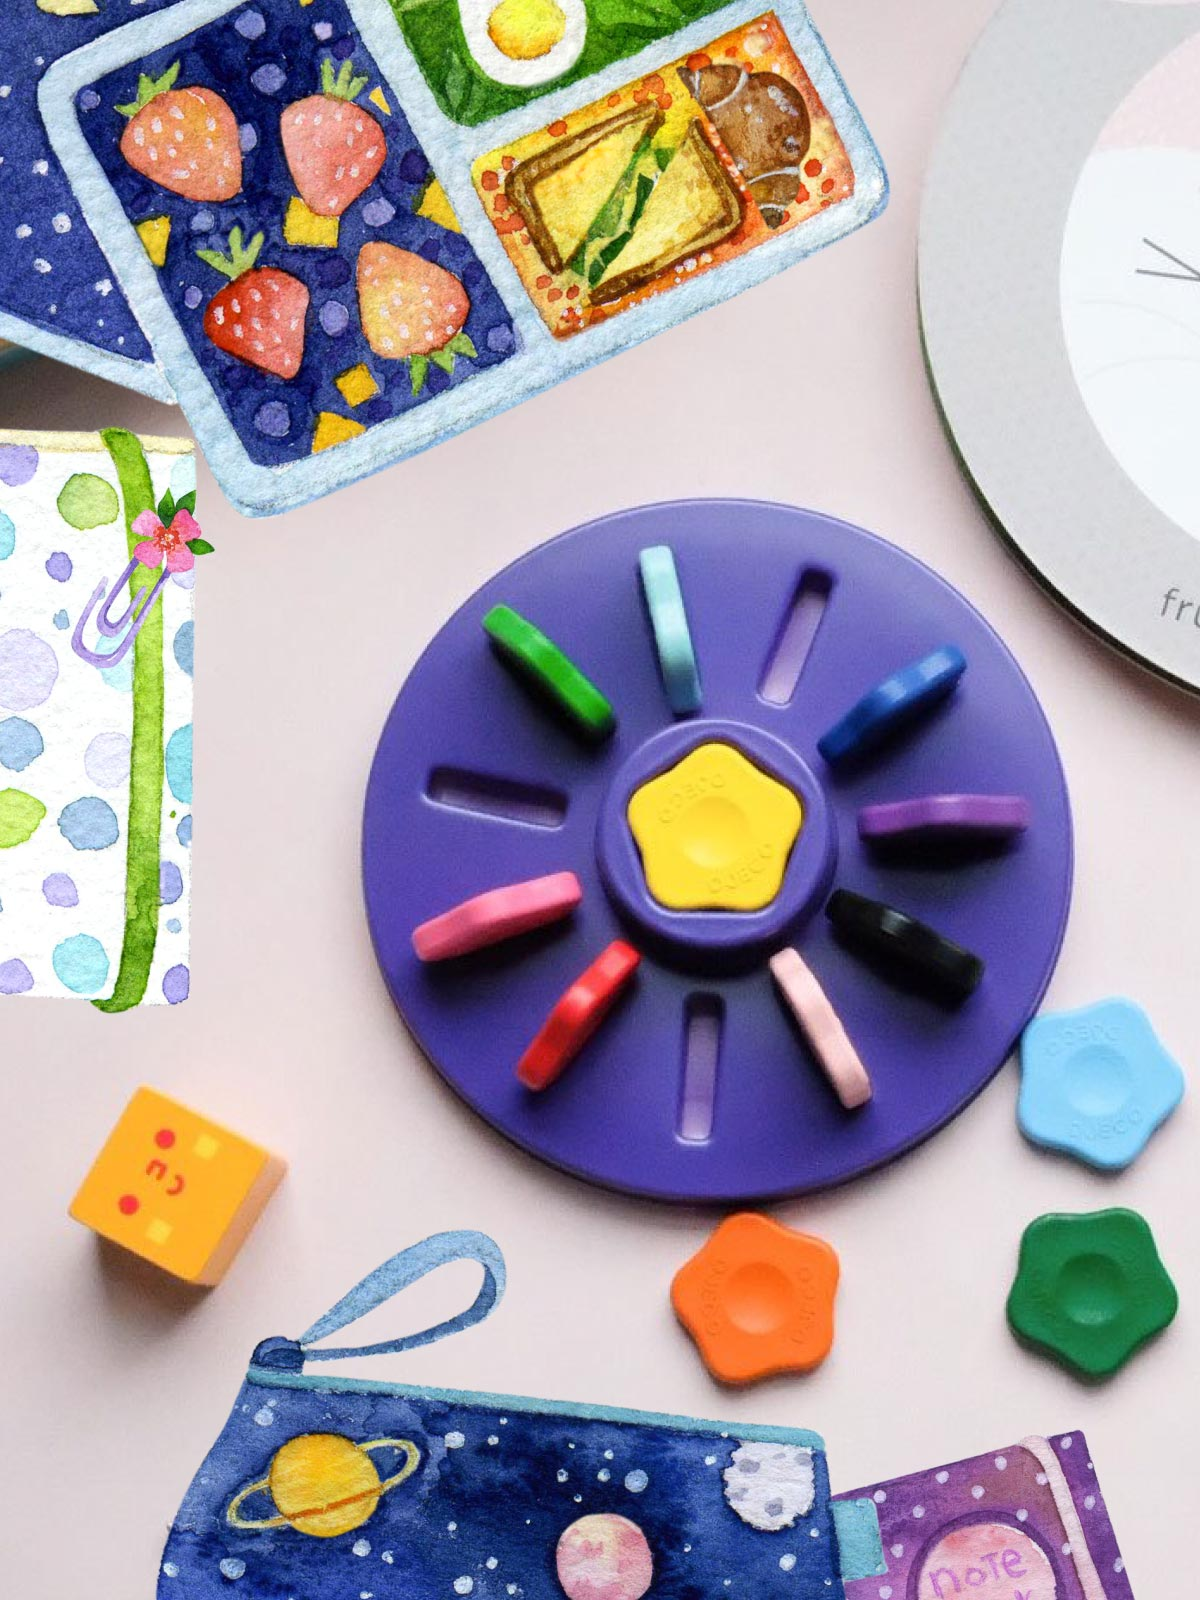 frederickandsophie-kids-toys-djeco-artist-kit-coloring-crayons-arts-crafts-play